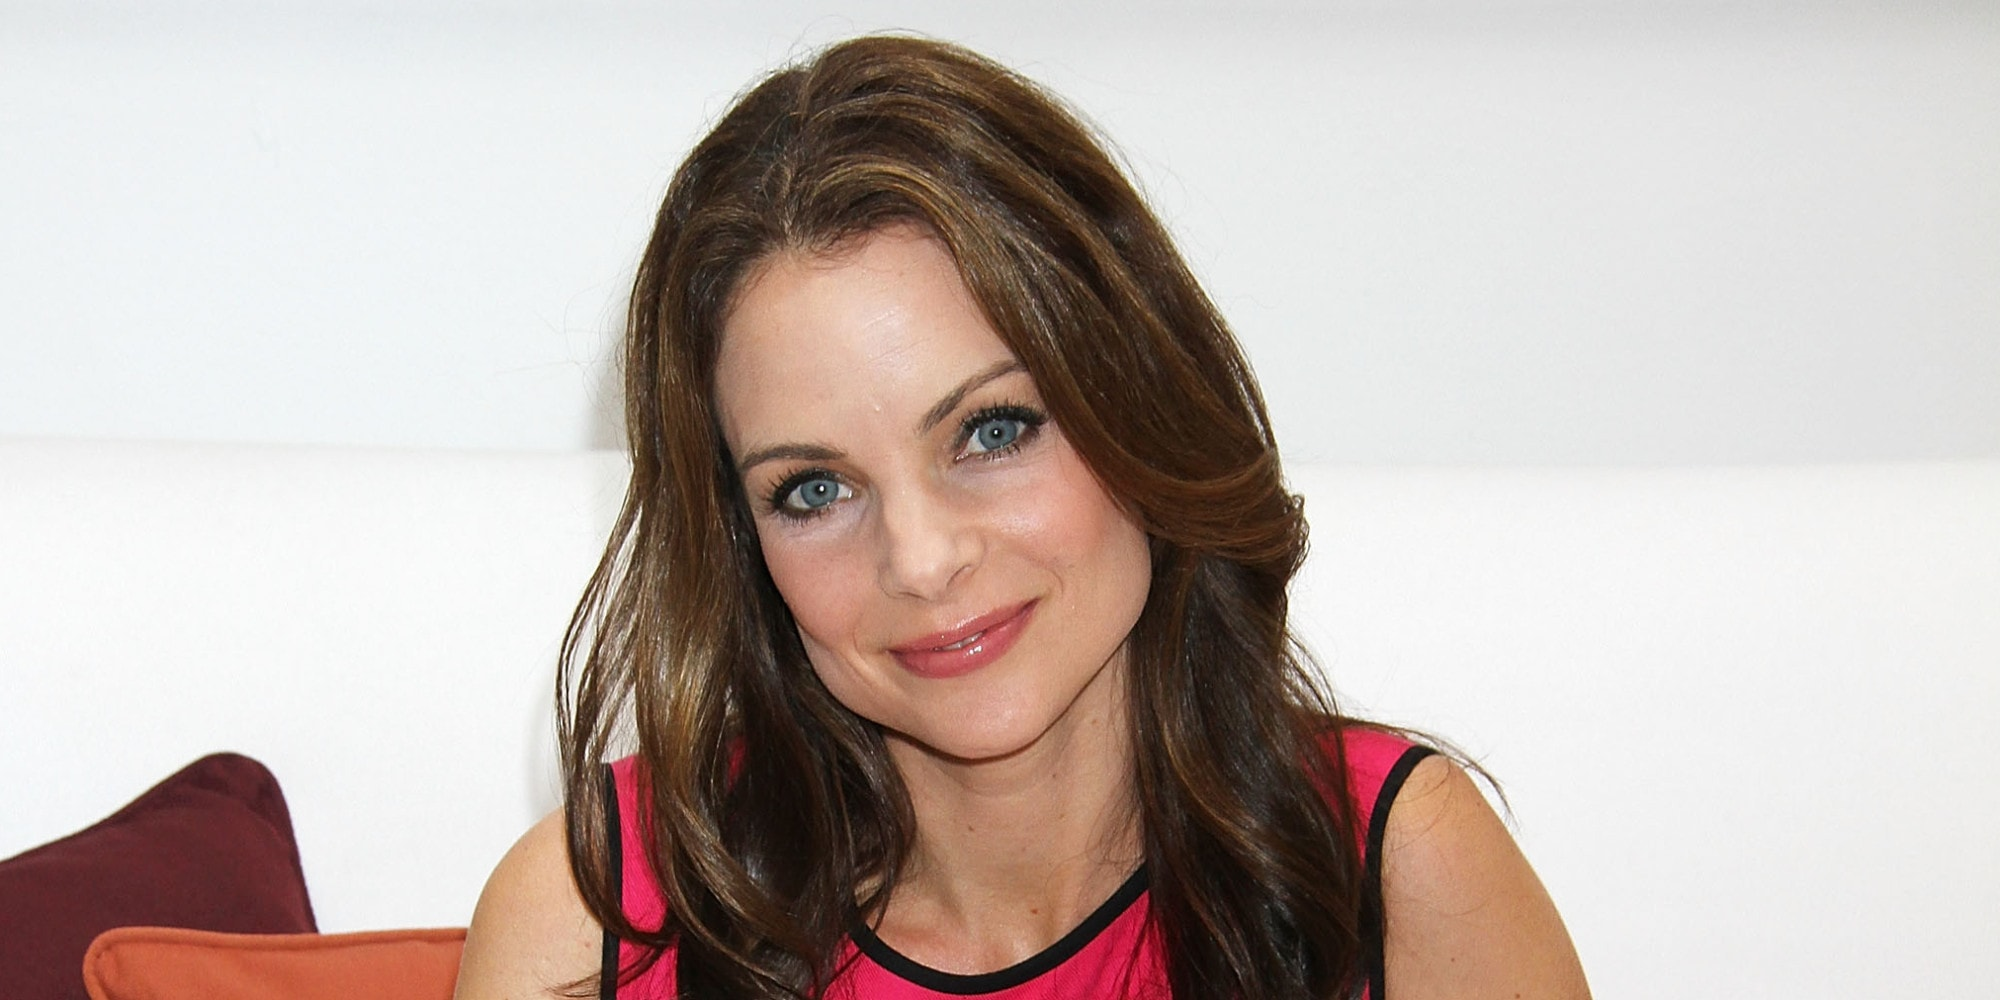 Kimberly Williams-Paisley widescreen wallpapers